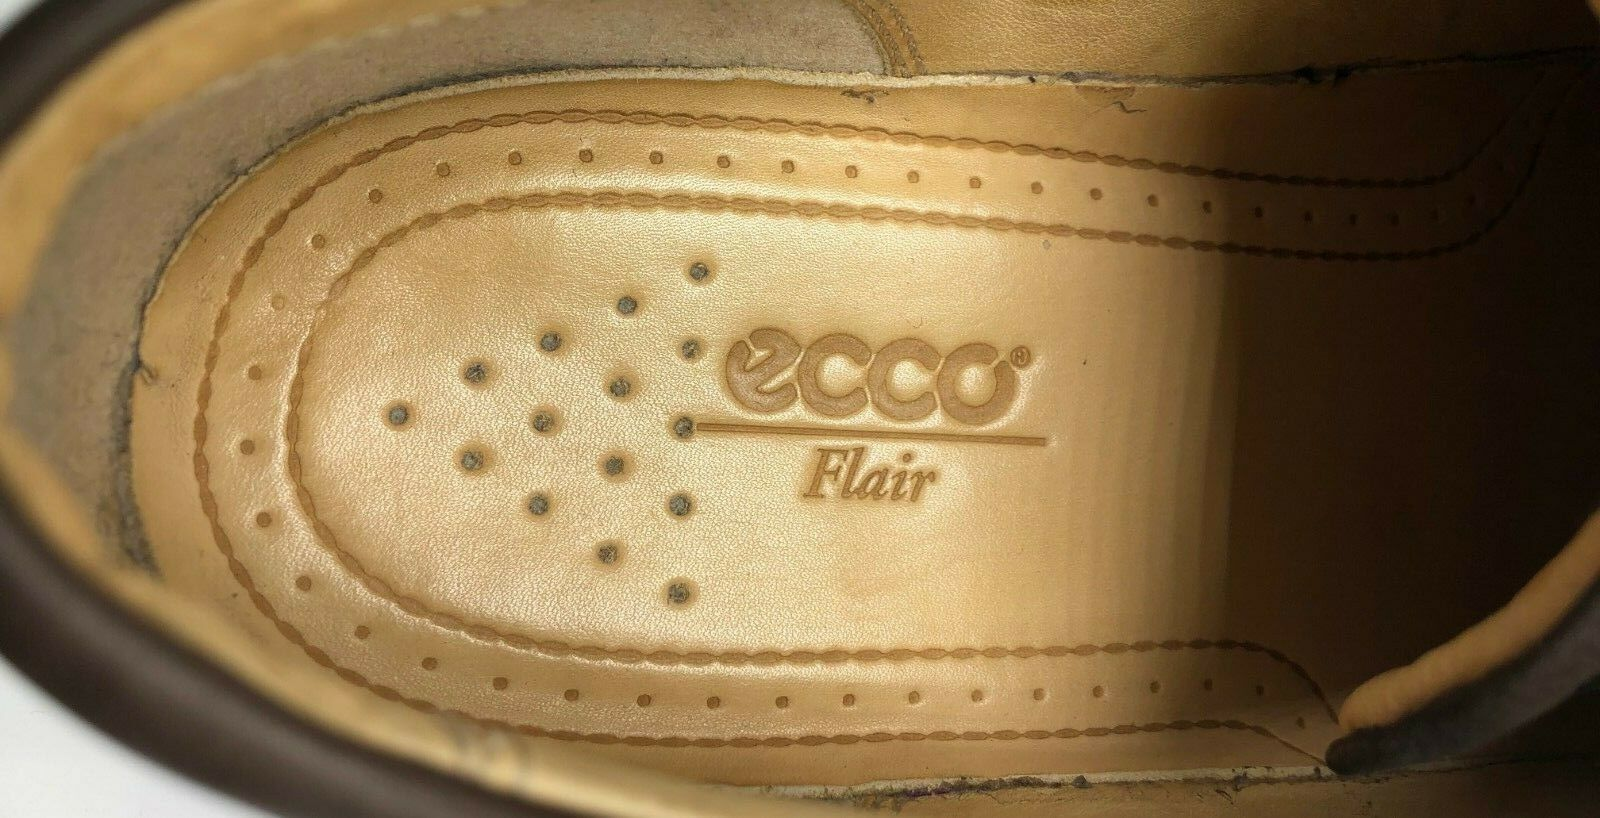 ECCO Flair Leather Women's Brown Tie Loafers shoes - - - Size 40 (US 10) 086786